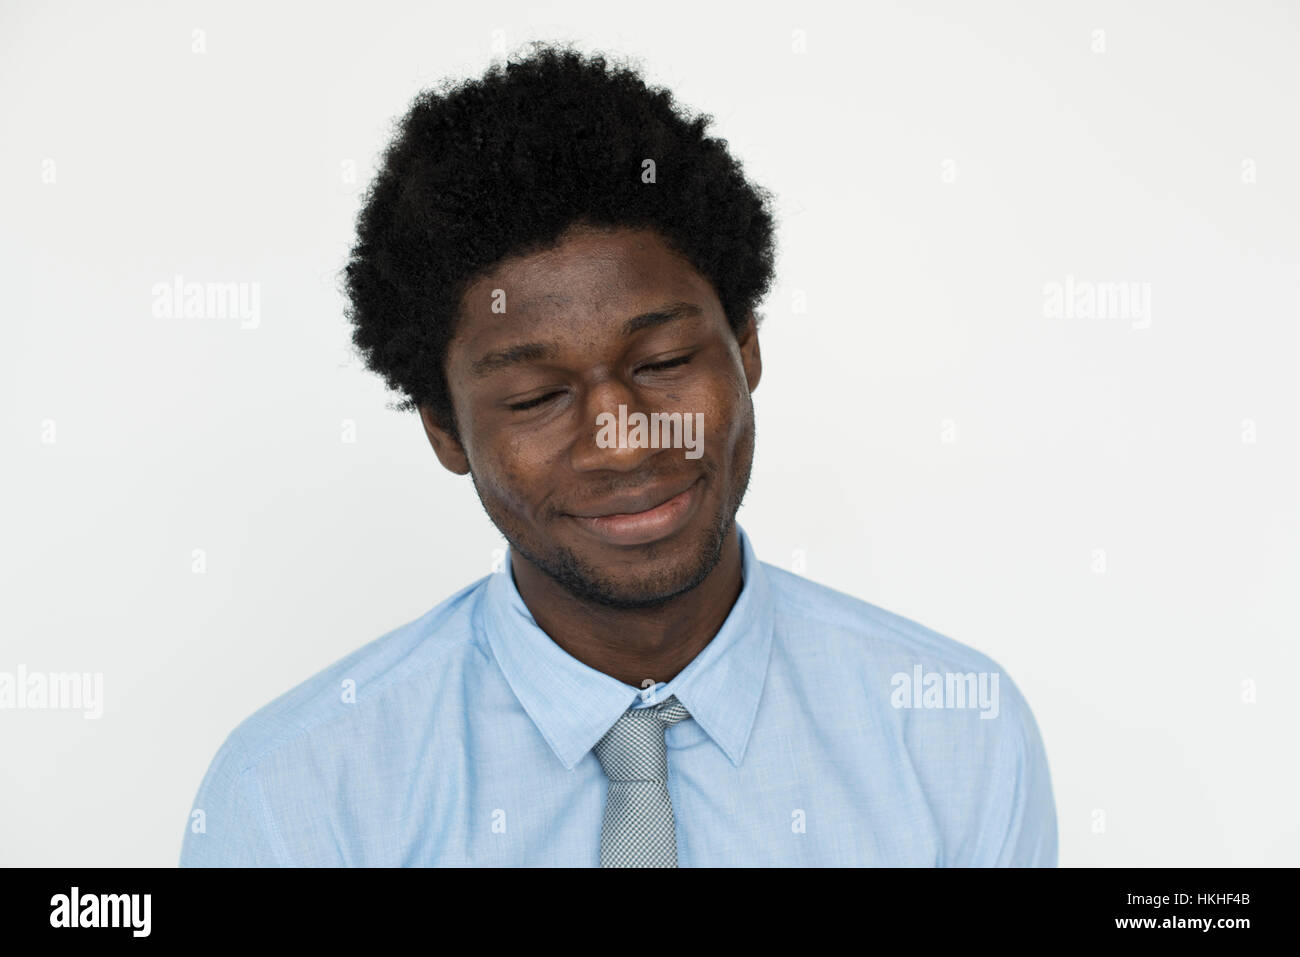 Man Cheerful Studio Portrait Concept - Stock Image